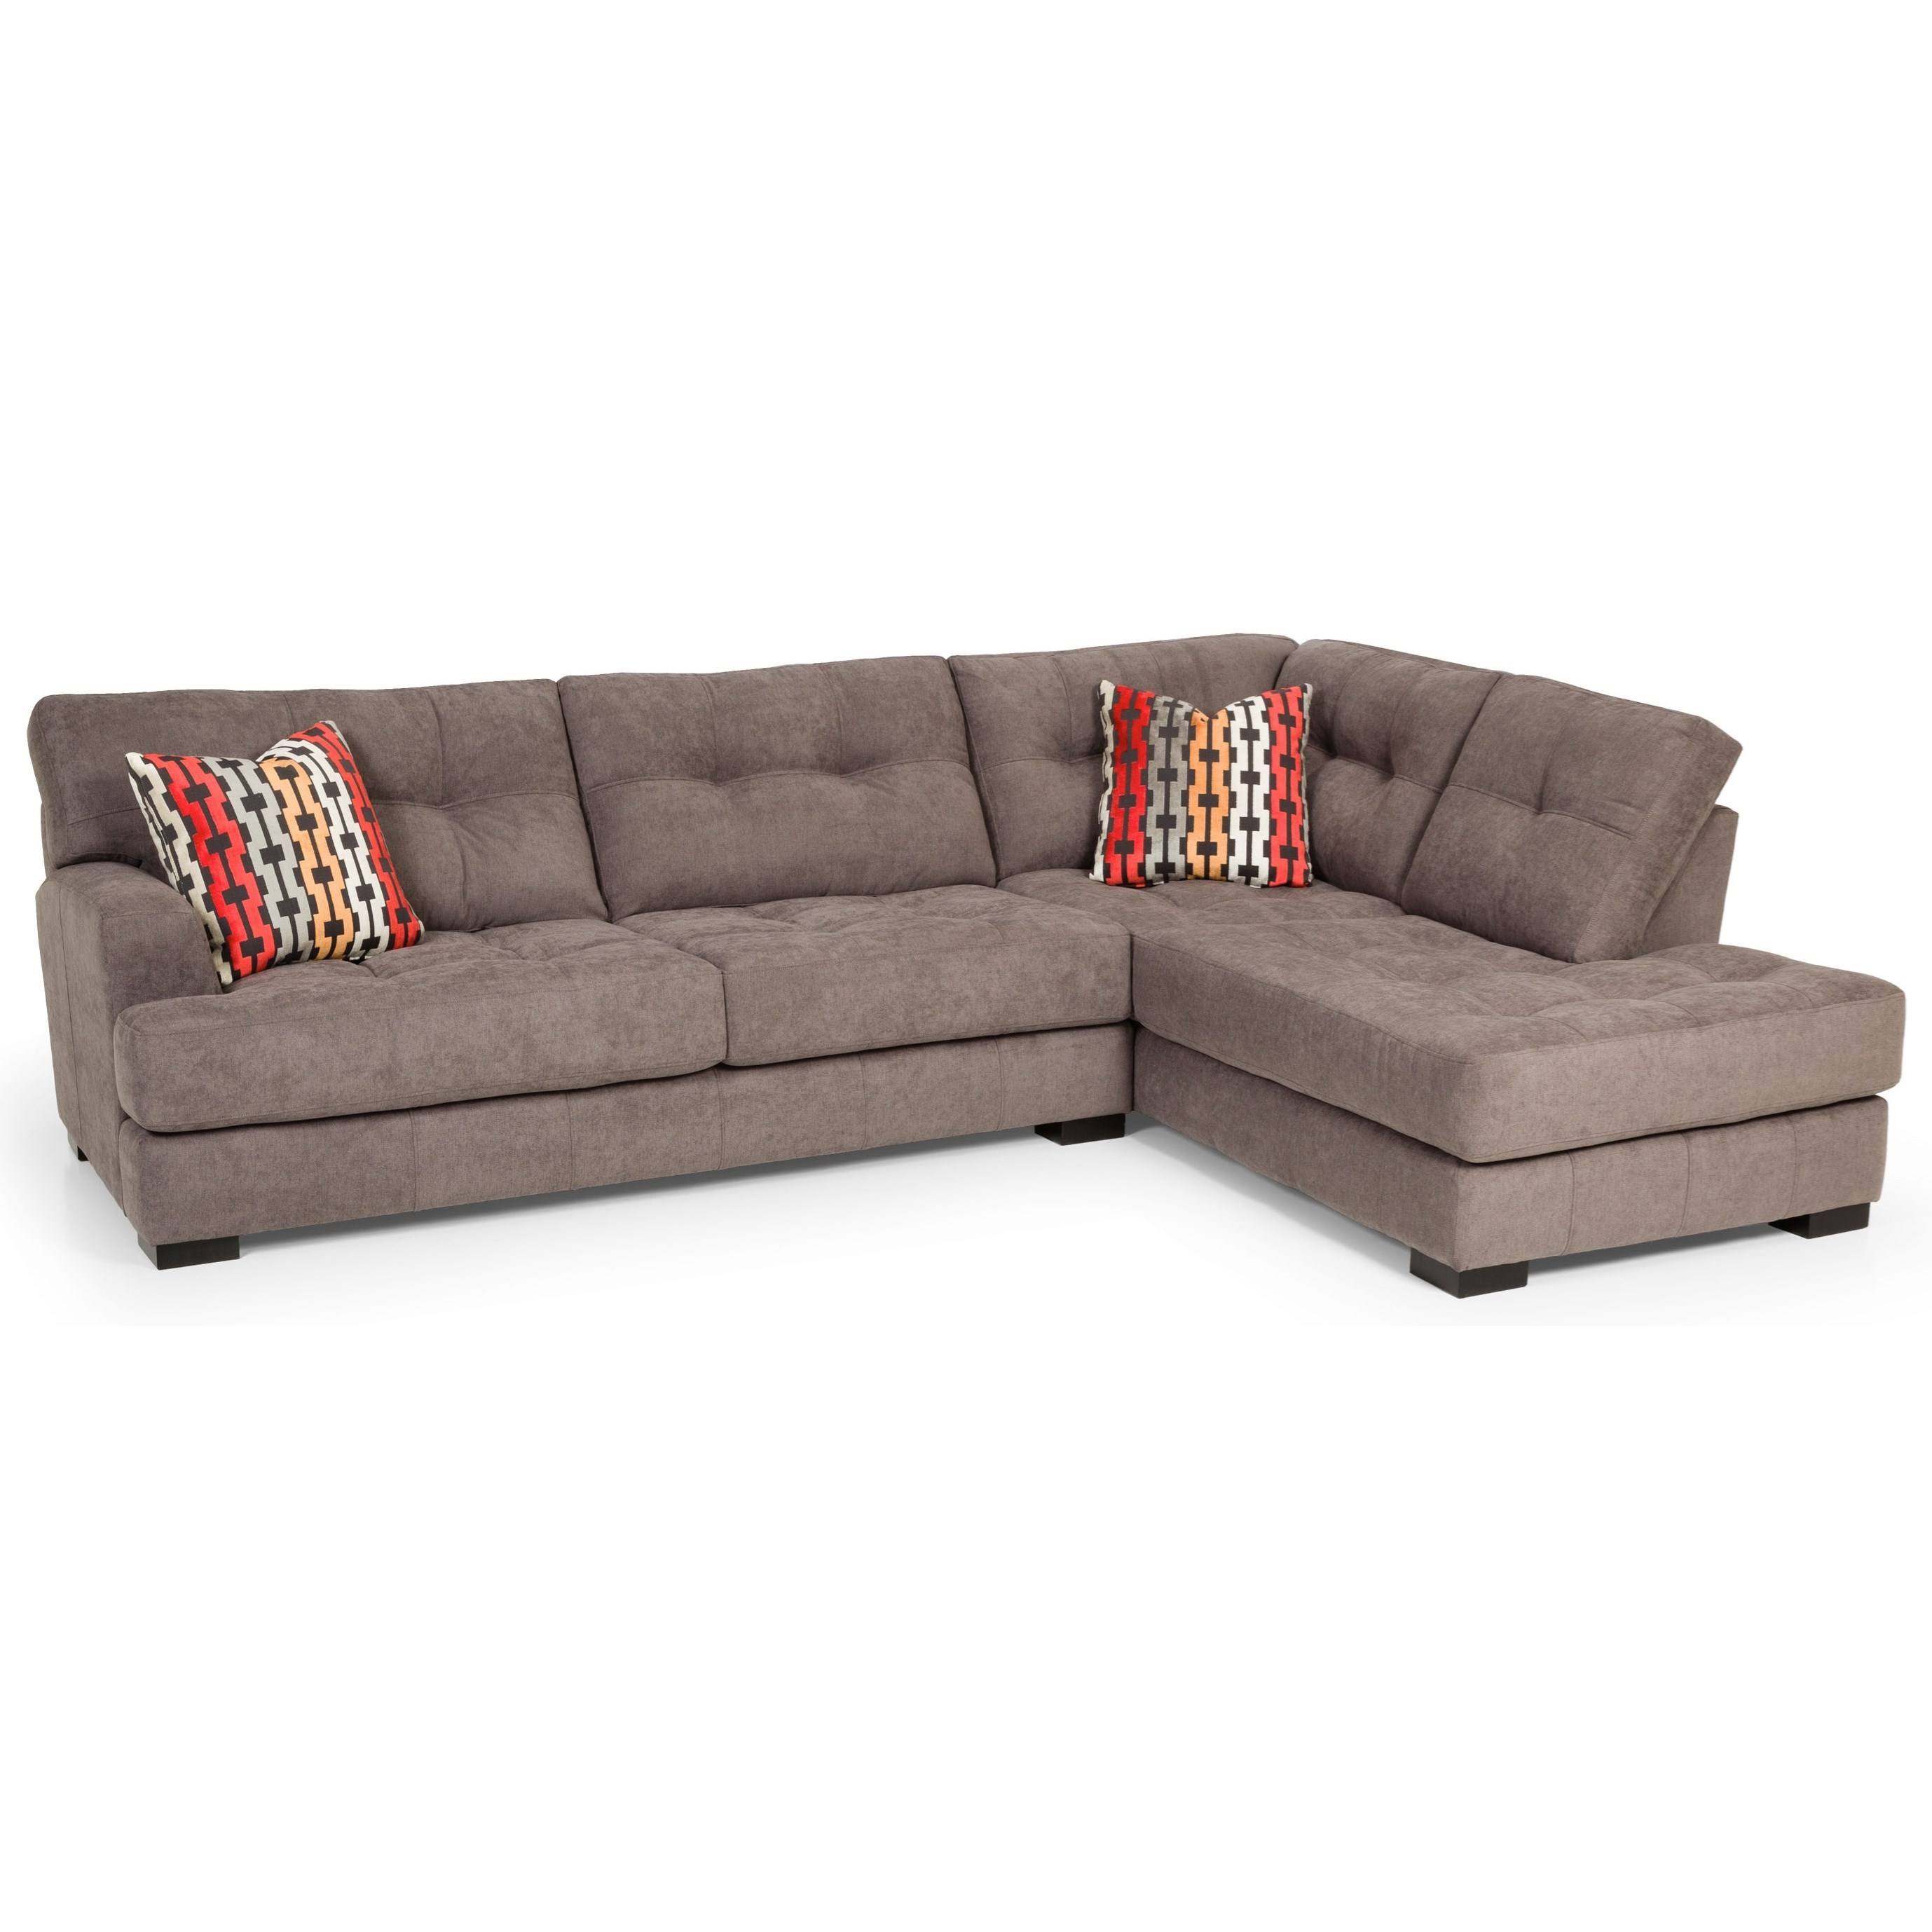 Stanton 308 2 Pc Sectional Sofa - Item Number: 308-11L+38R